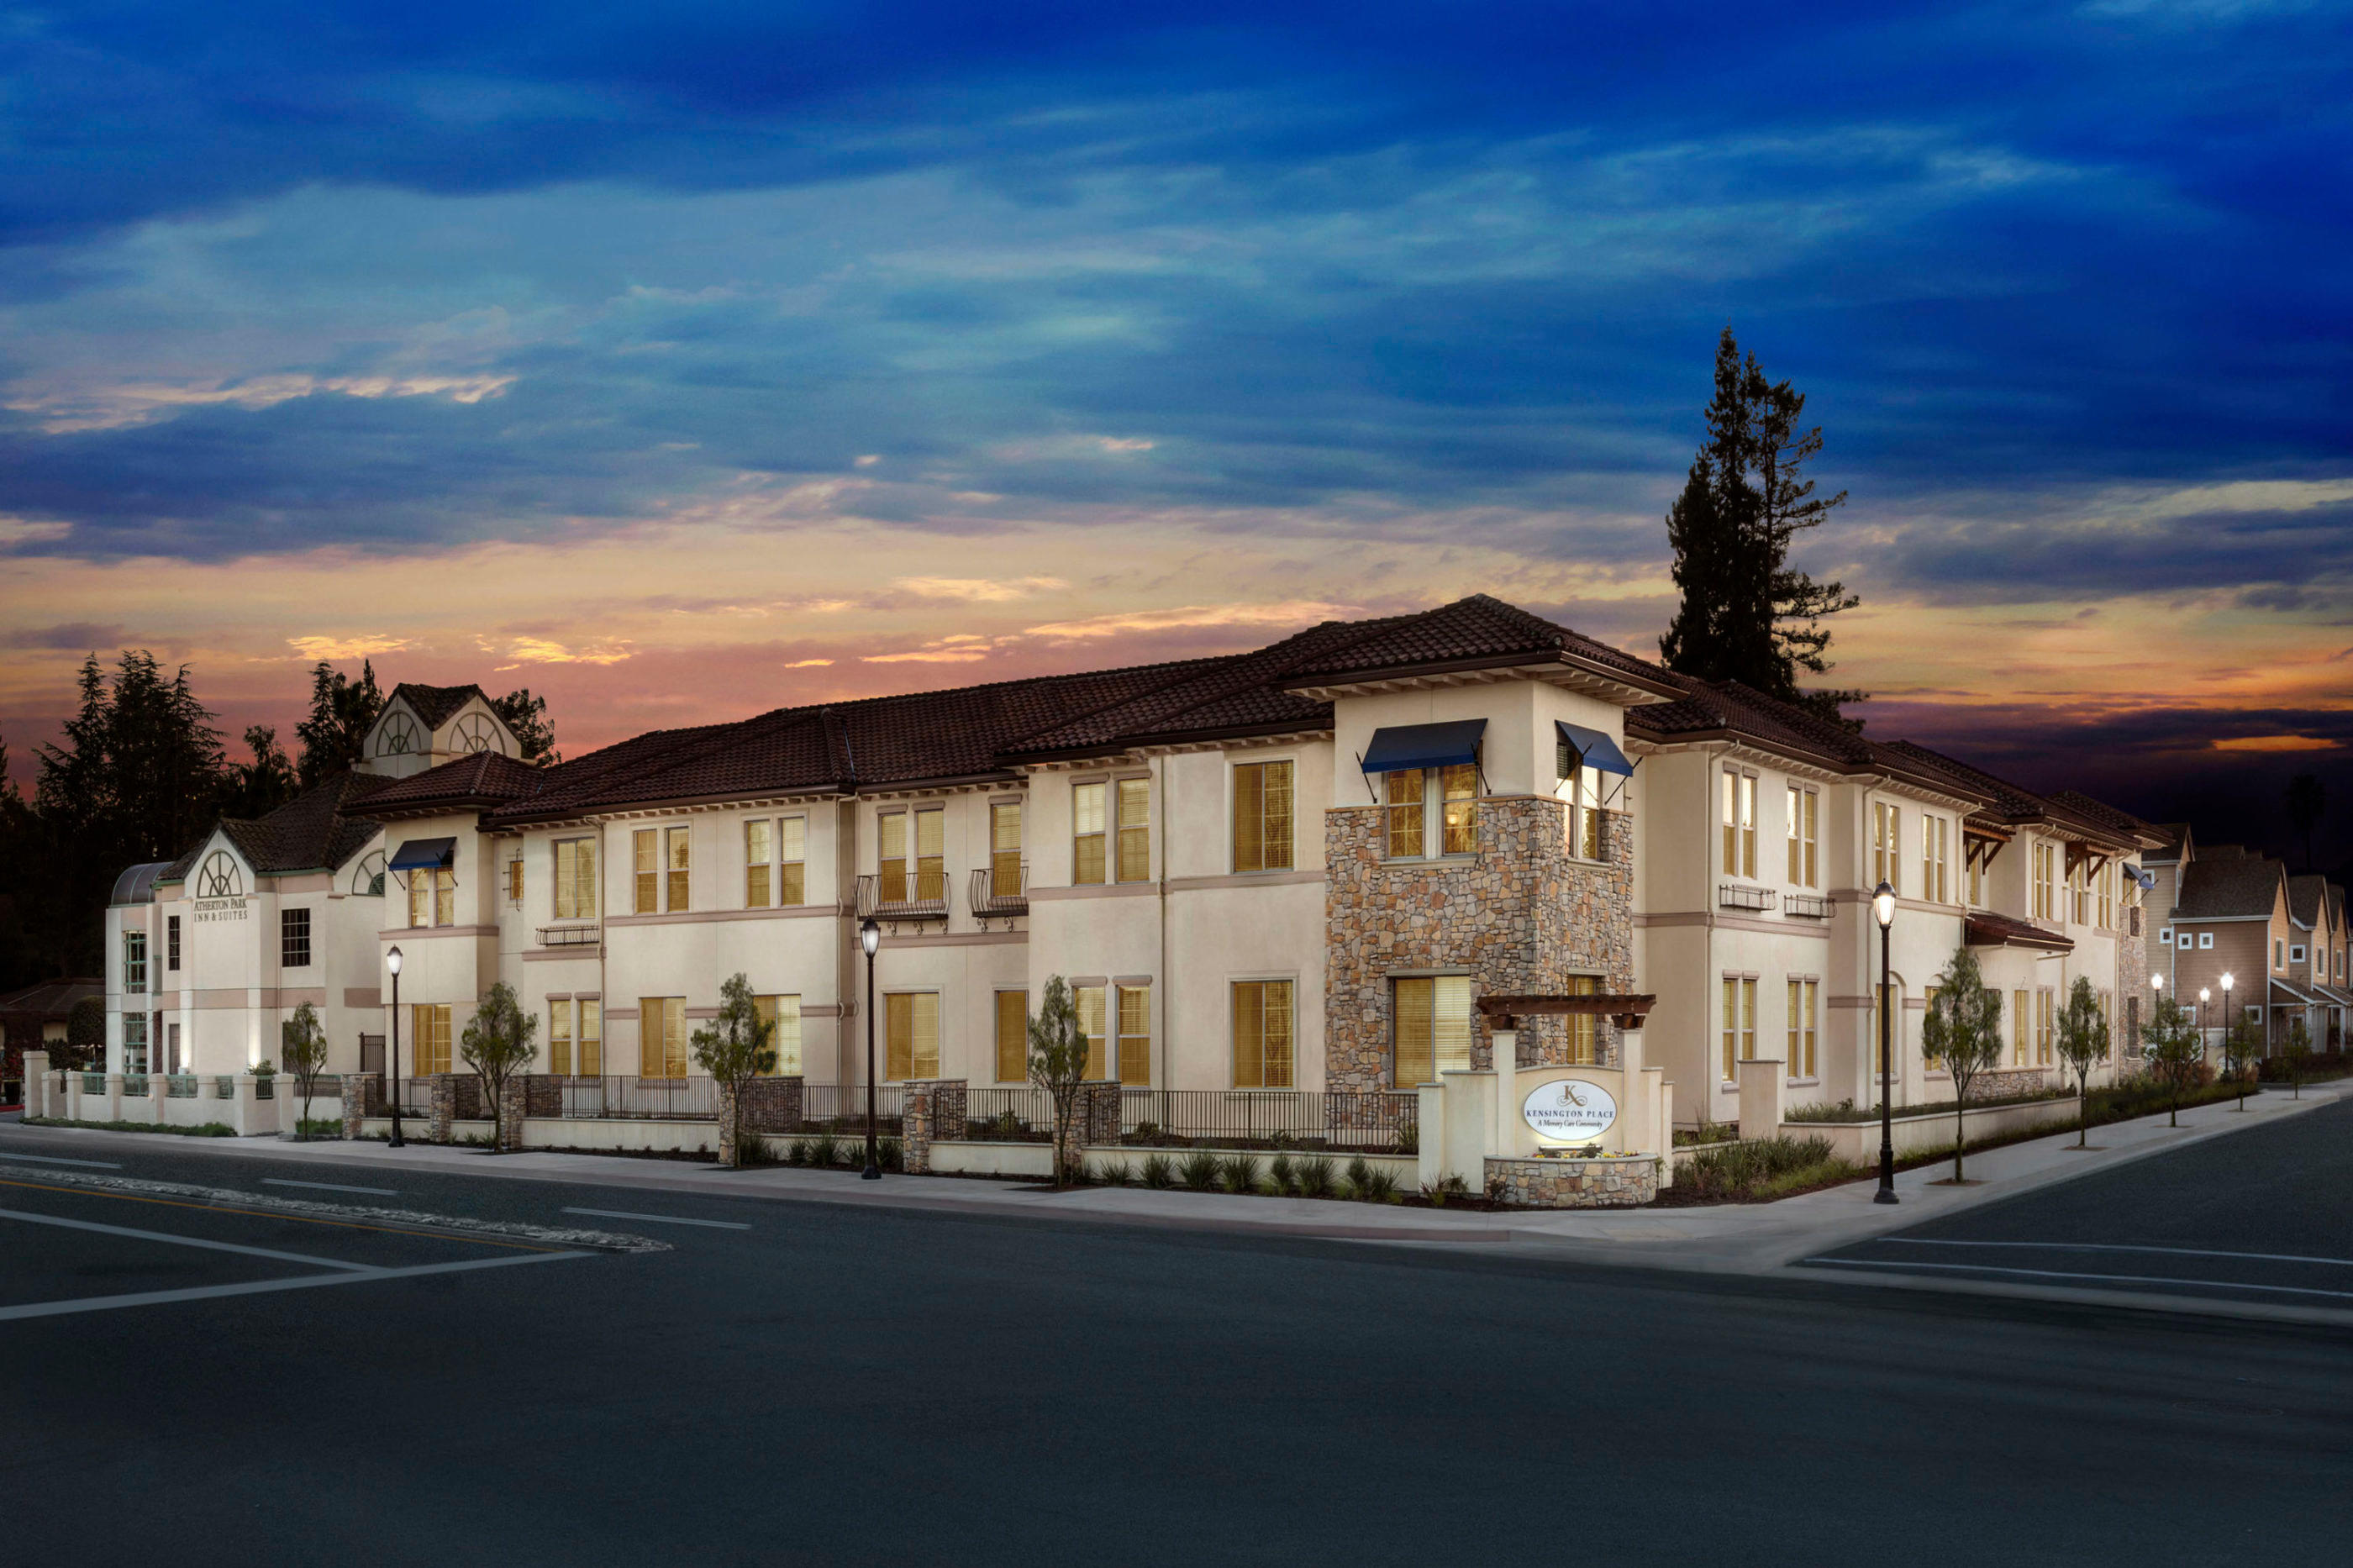 Kensington place redwood city redwood city california ca for Kensington retirement home